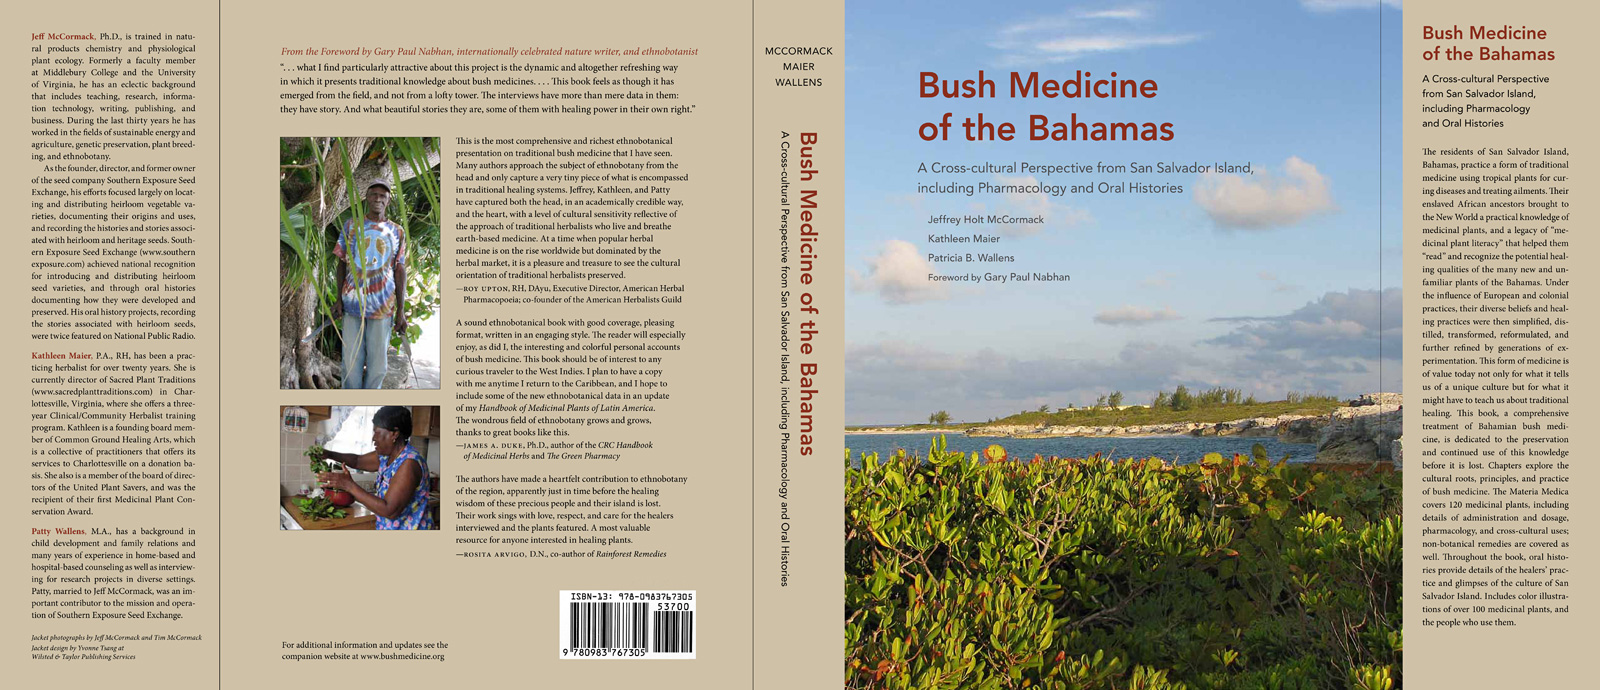 Bush Medicine of the Bahamas book jacket - large image